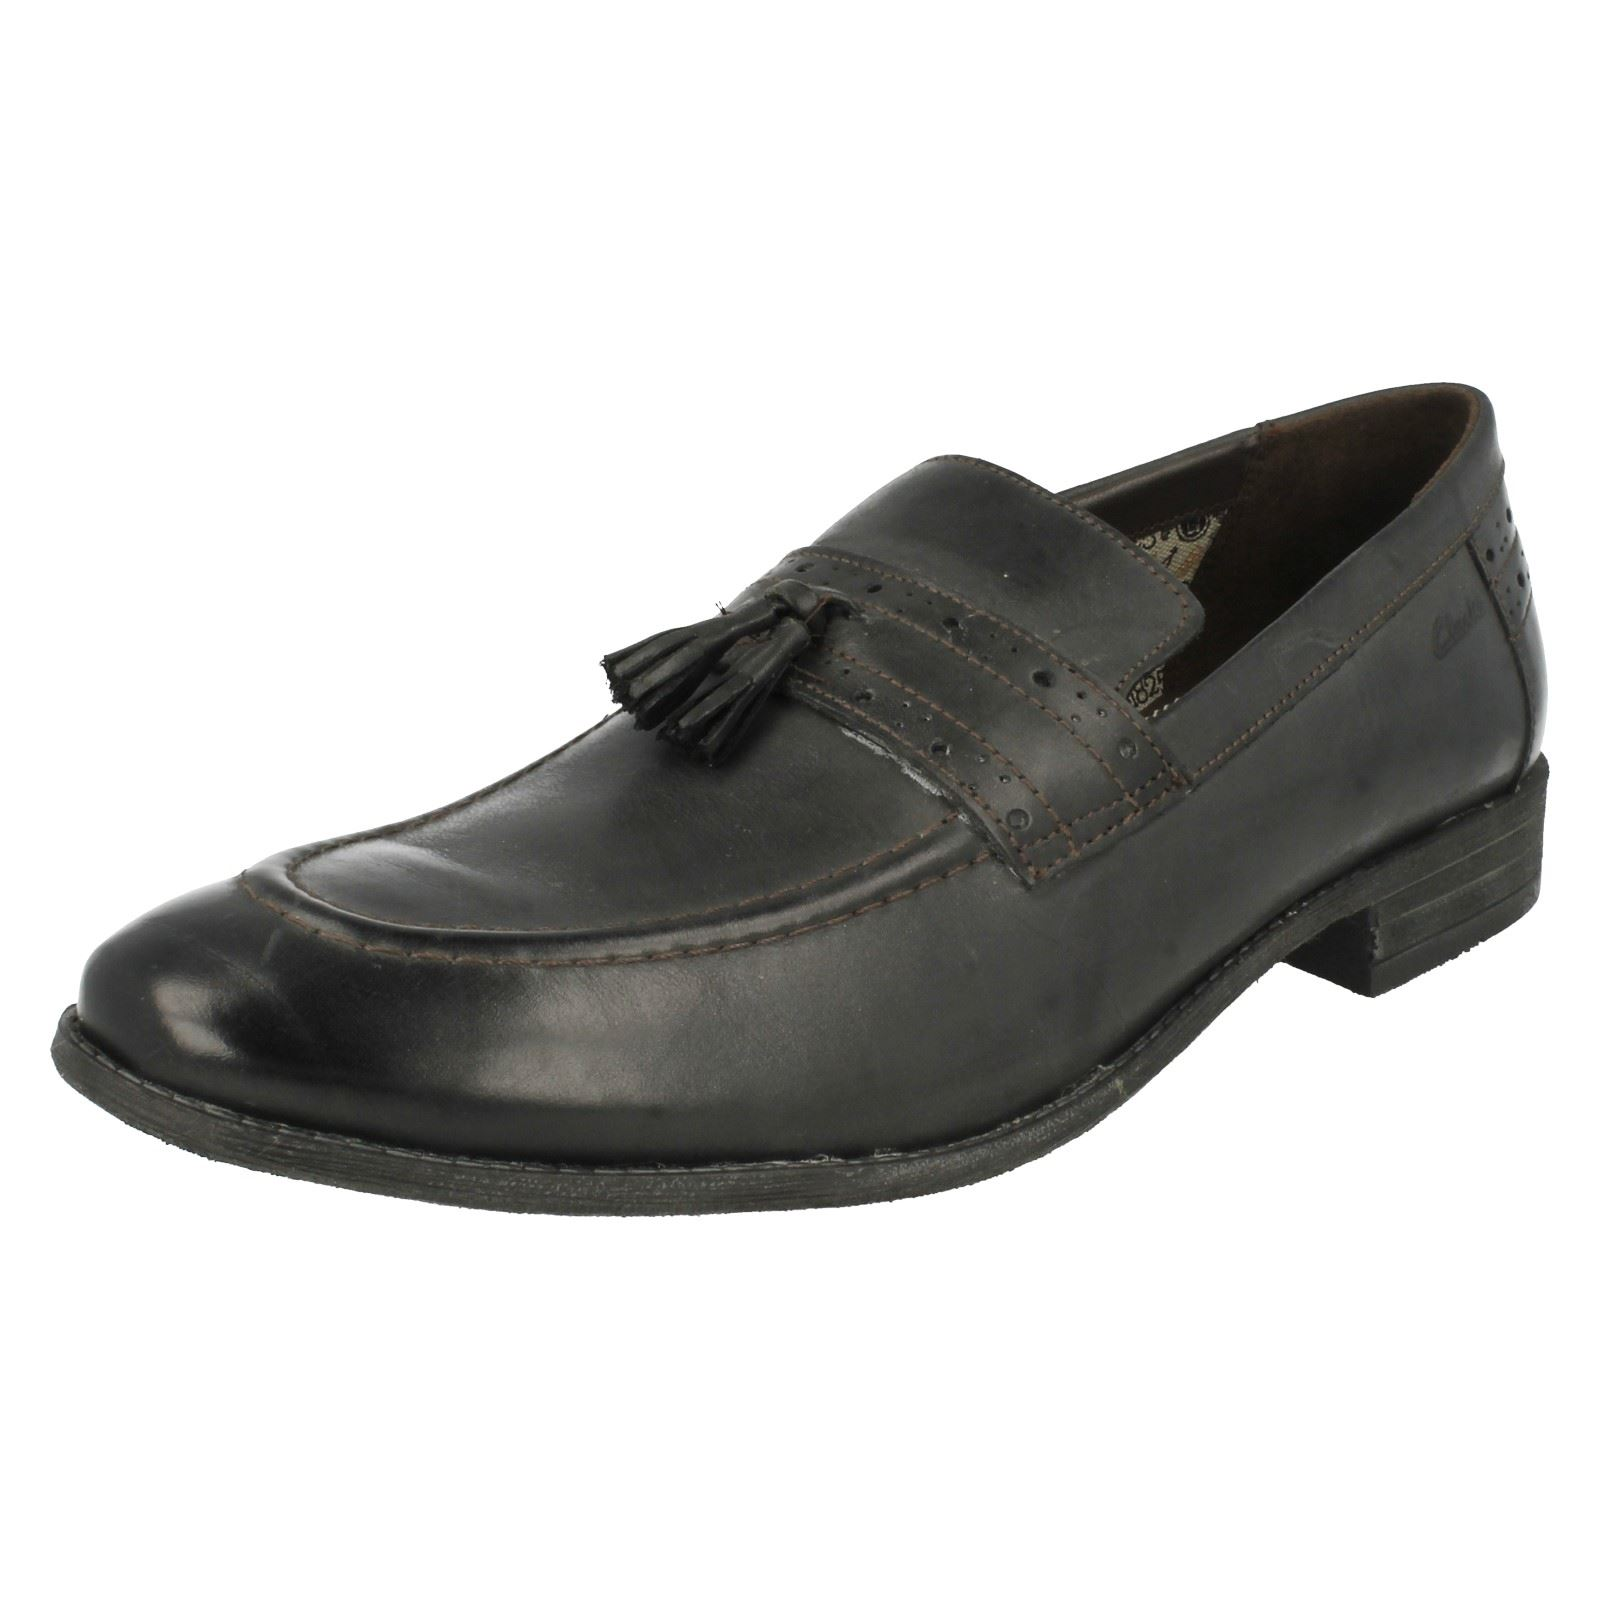 Details about Clarks Mens Formal Loafer Shoes Chart Lift